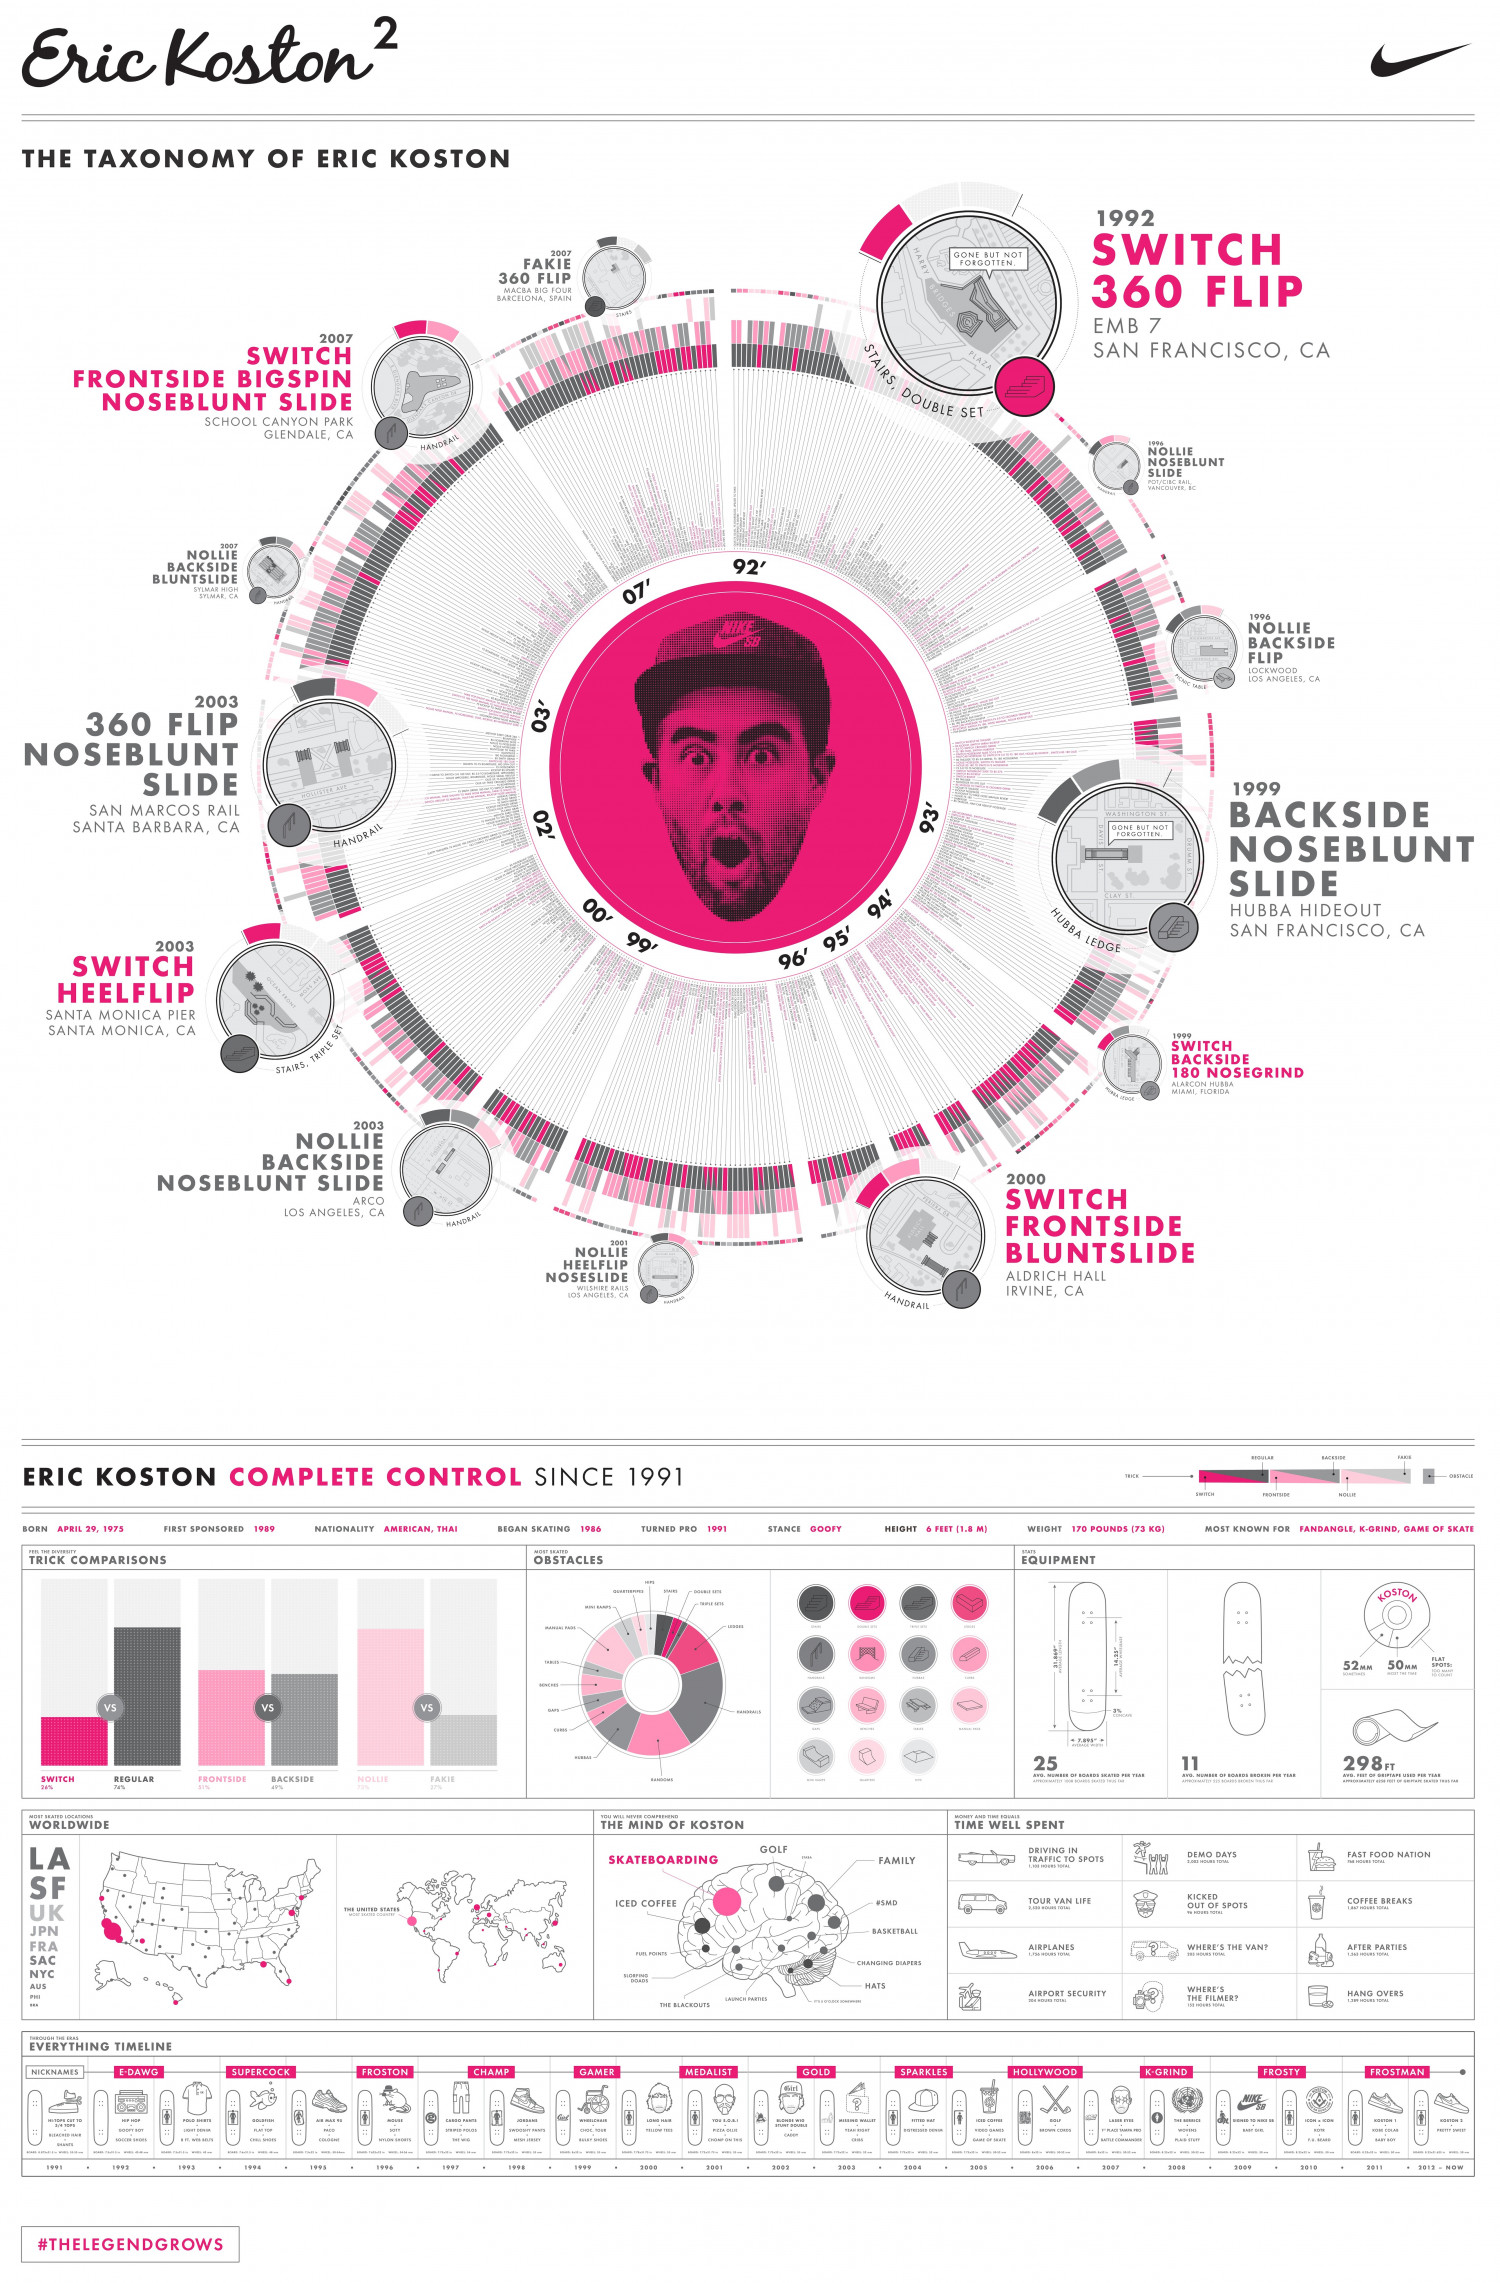 The Mind of Koston Infographic